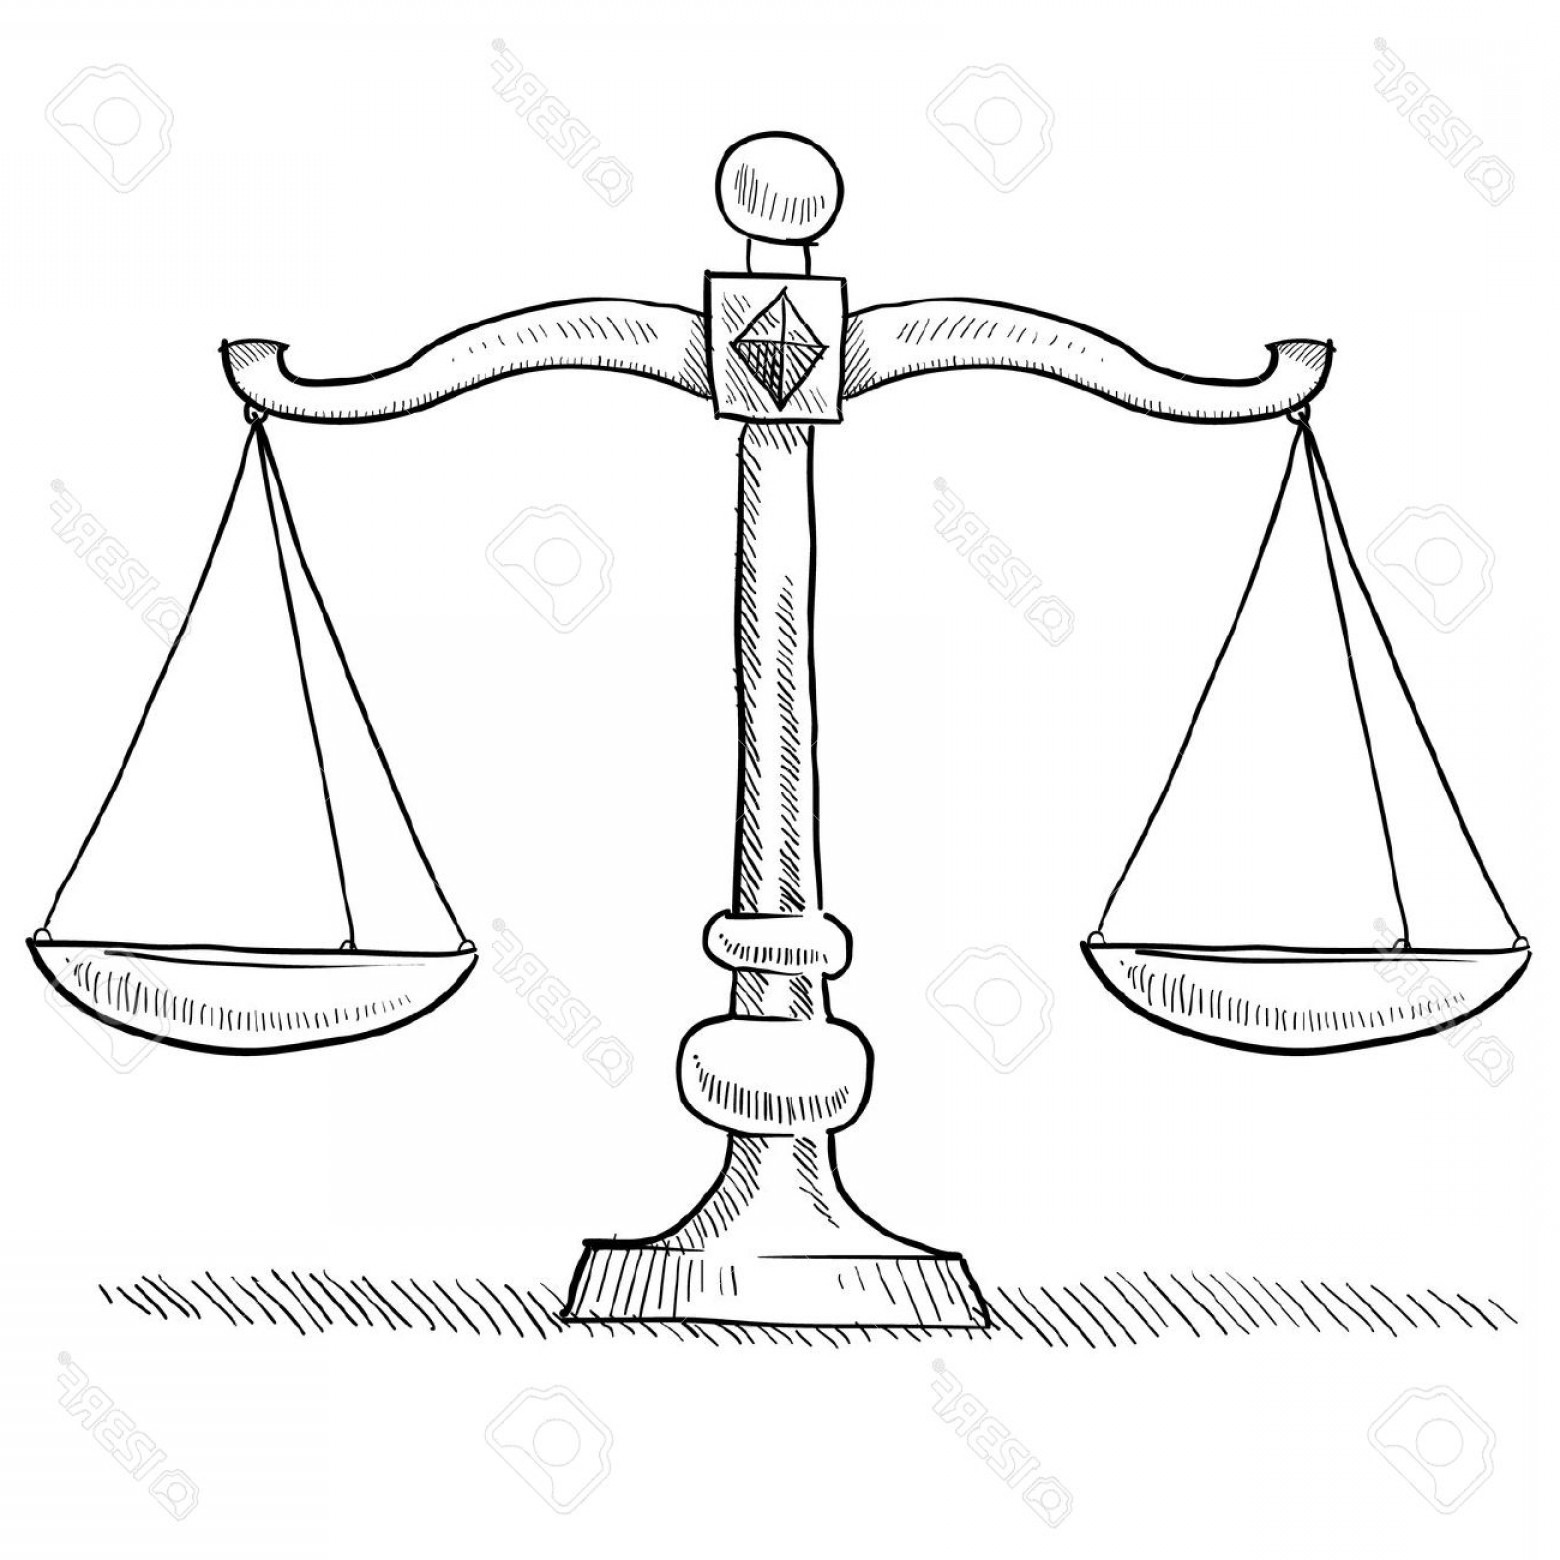 Photodoodle Style Scales Of Justice Vector Illustration